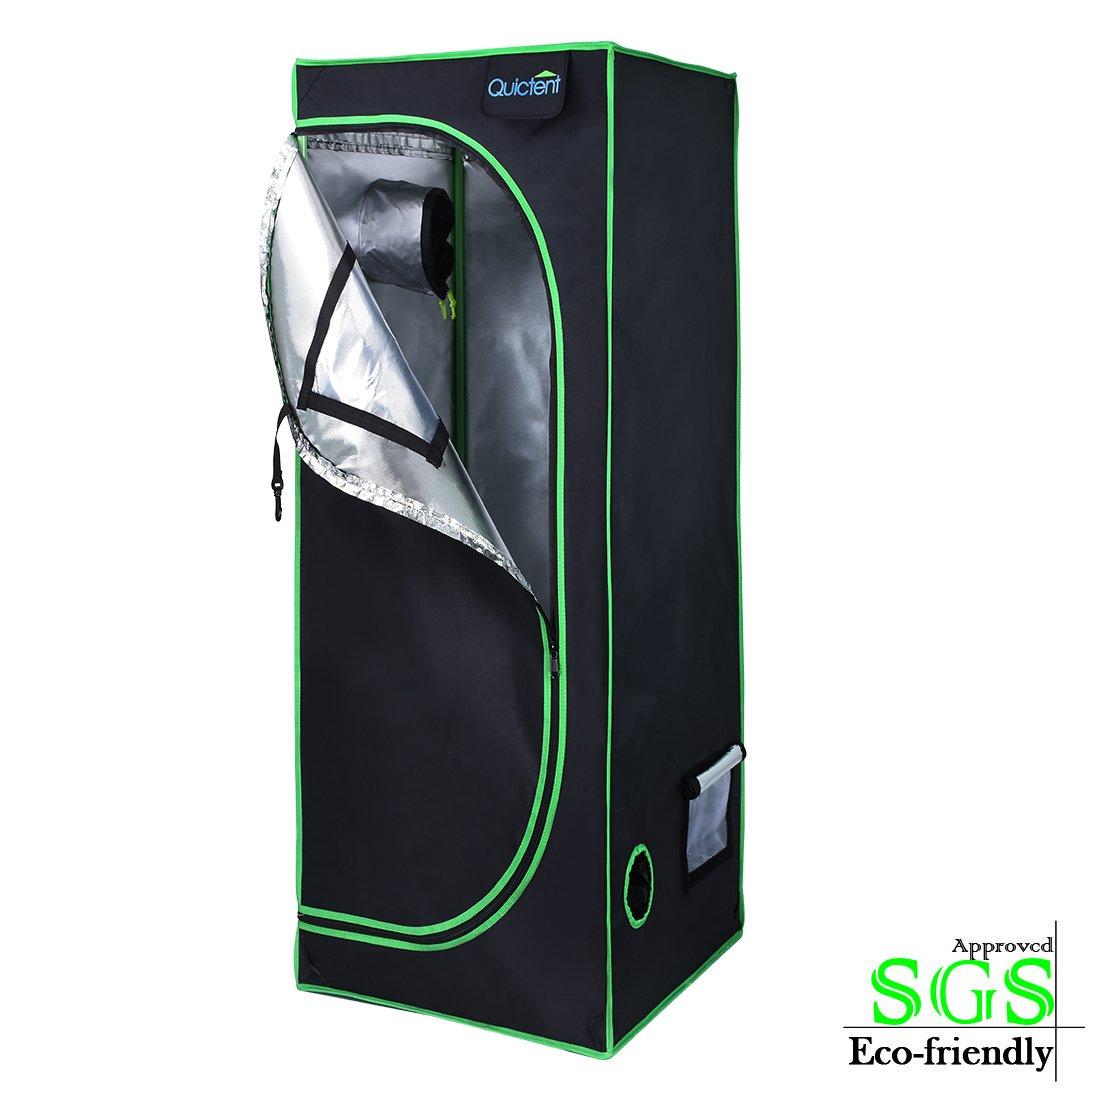 Quictent SGS - smallest marijuana grow tent  sc 1 st  Best LED Grow Lights & Best Grow Tent for Growing Cannabis (2019) - Reviews u0026 Guide